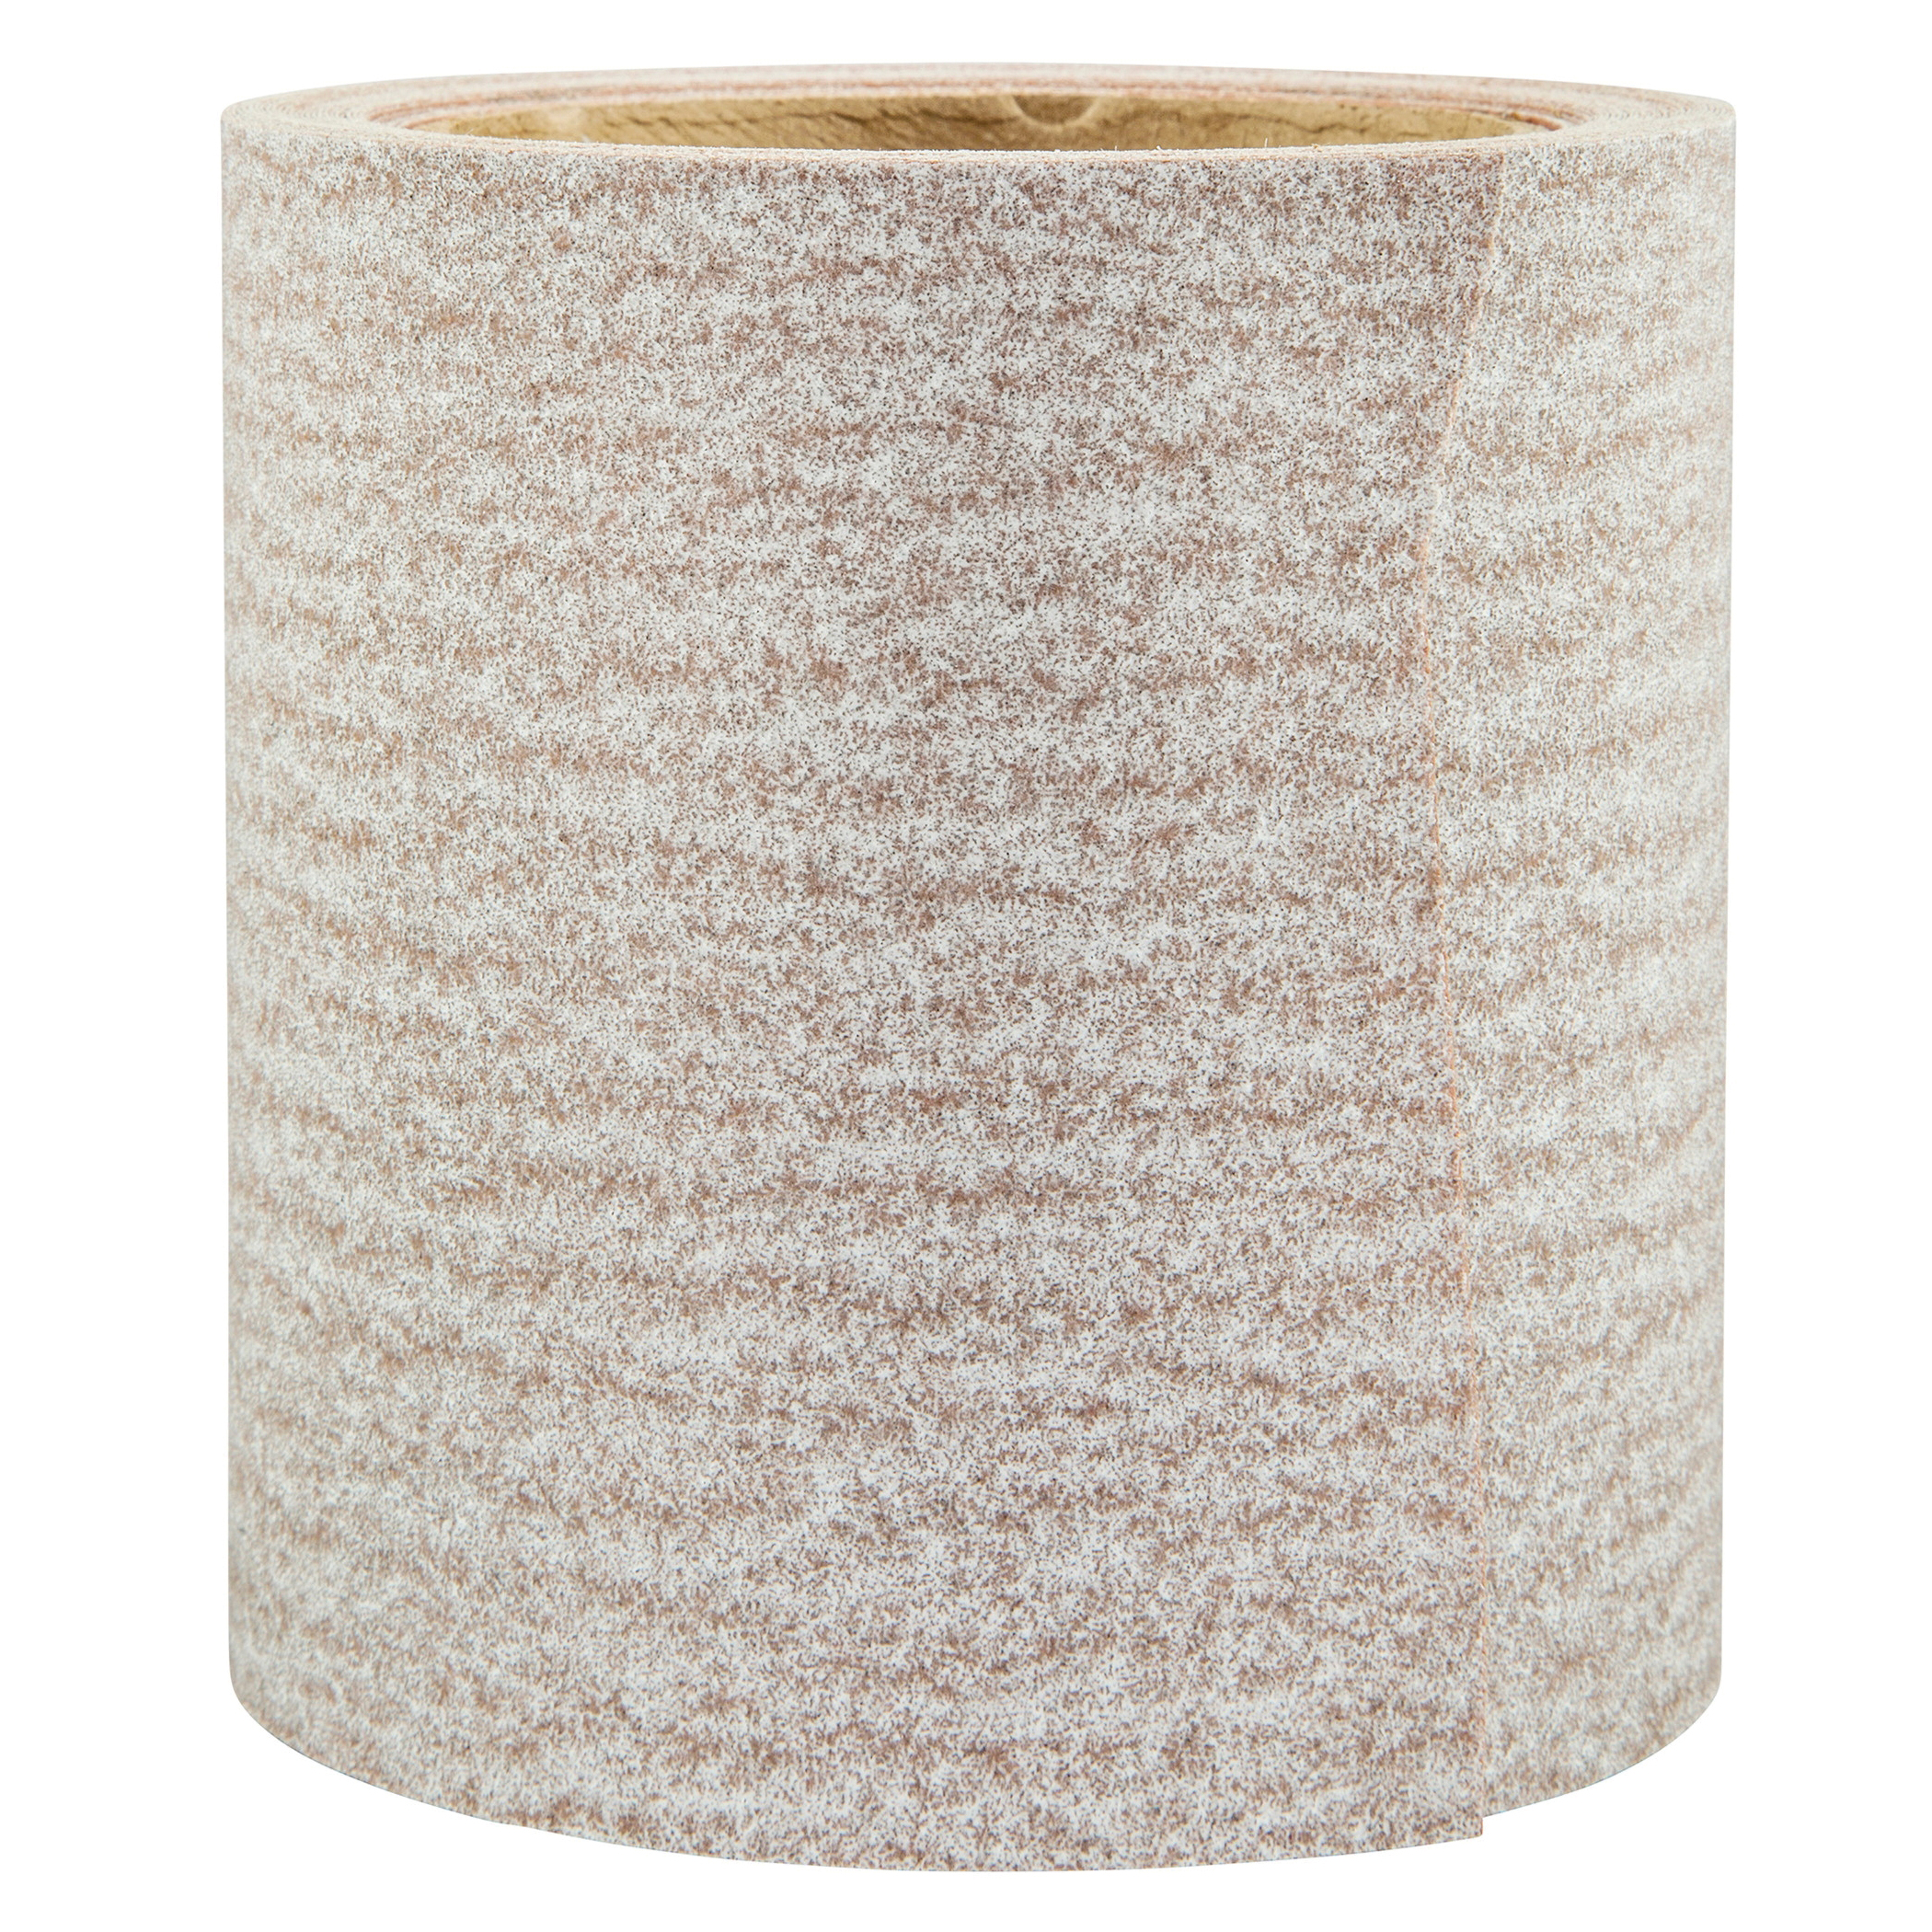 Norton® 66261131697 OP A275 Coated Abrasive Roll, 10 yd L x 4-1/2 in W, 80 Grit, Coarse Grade, Aluminum Oxide Abrasive, Anti-Loading Paper Backing